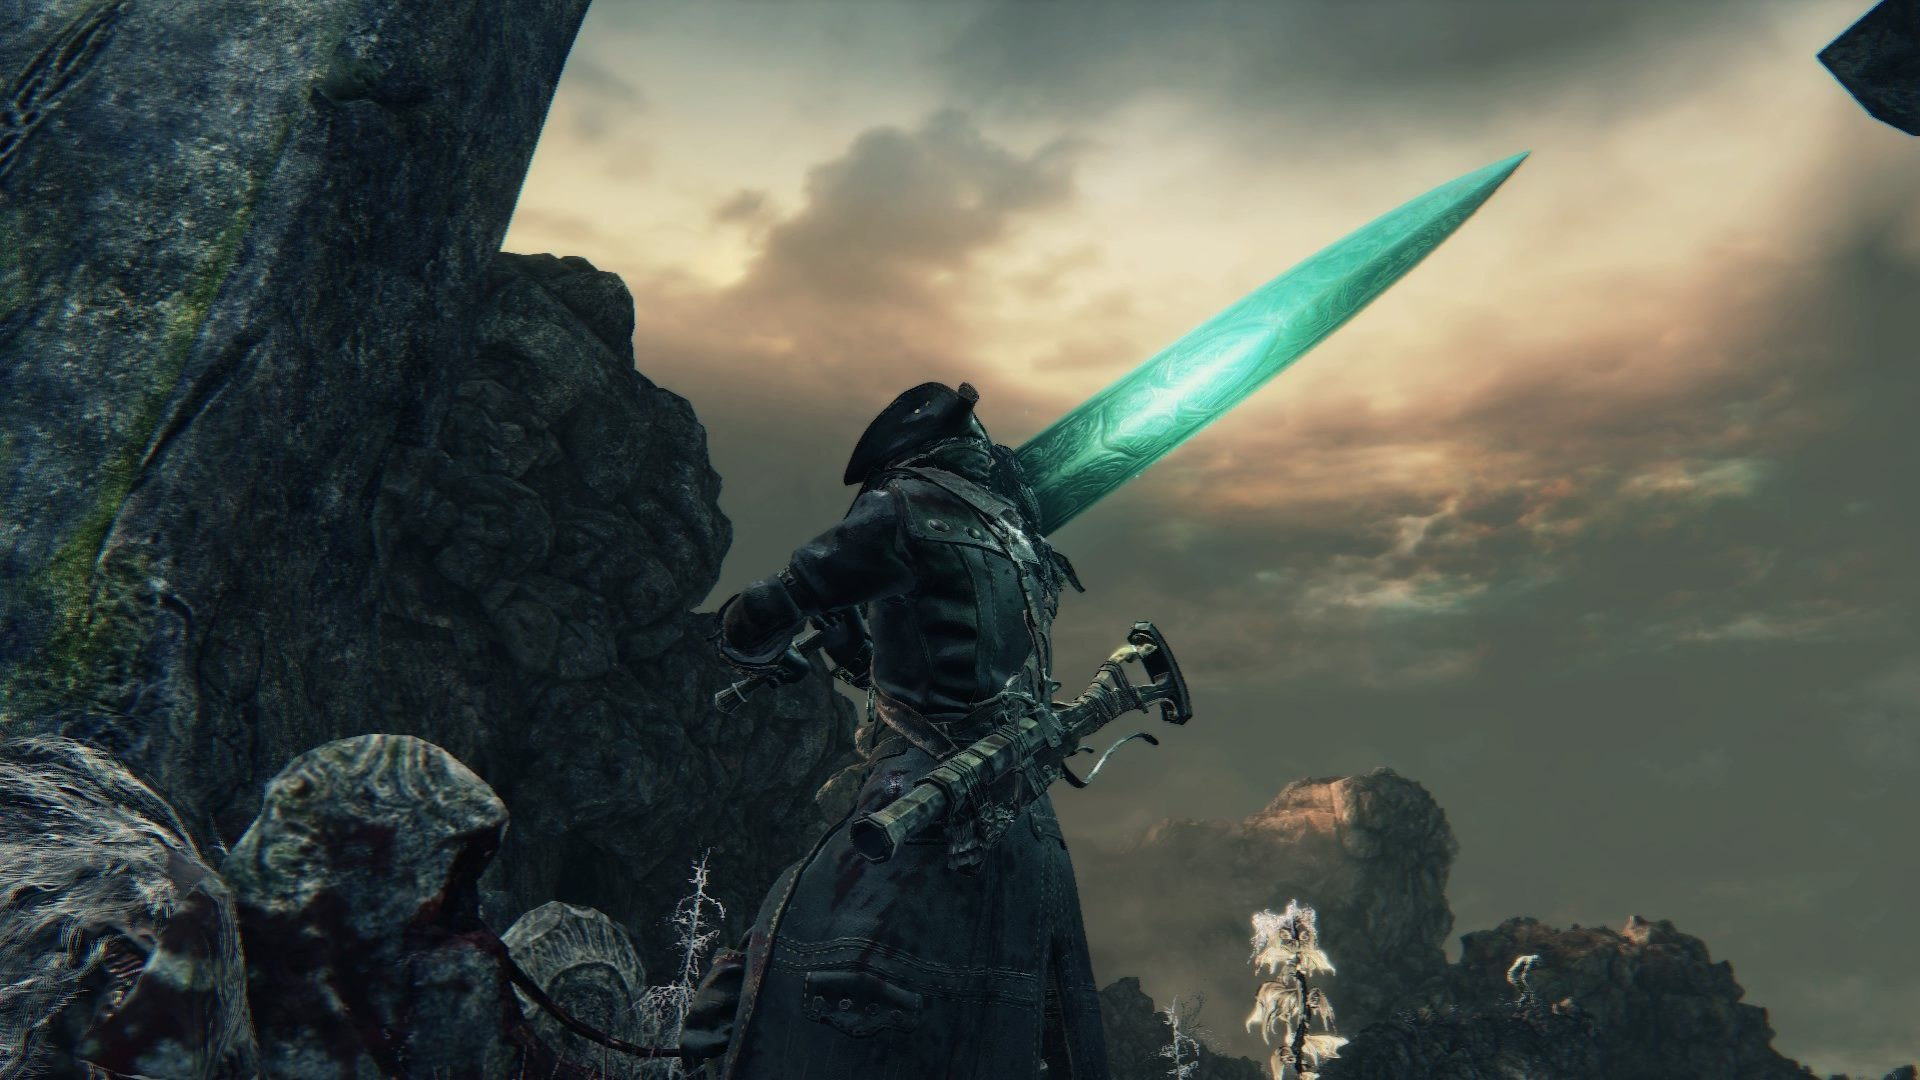 Holy_Moonlight_Sword_In_The_Nightmare_Frontier.jpg